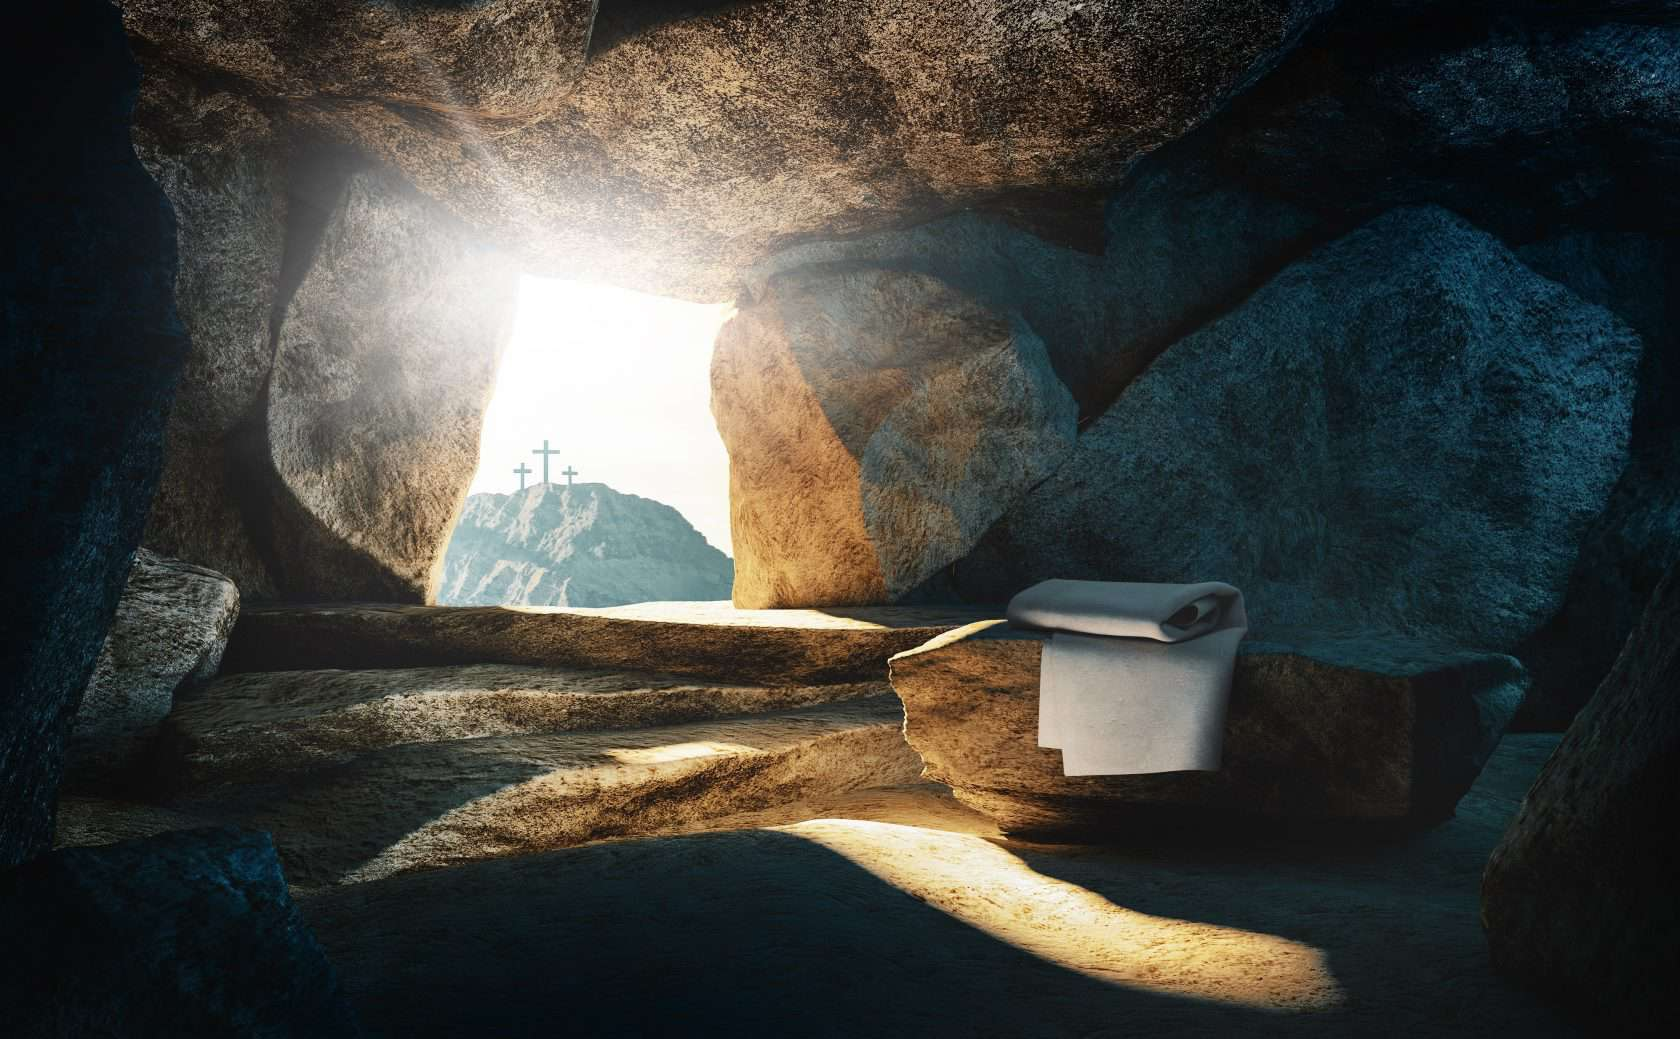 Empty tomb, Jesus' resurrection. Appearing in The Well, a gospel-centered website housing video life stories of people transformed through receiving Jesus Christ into their life